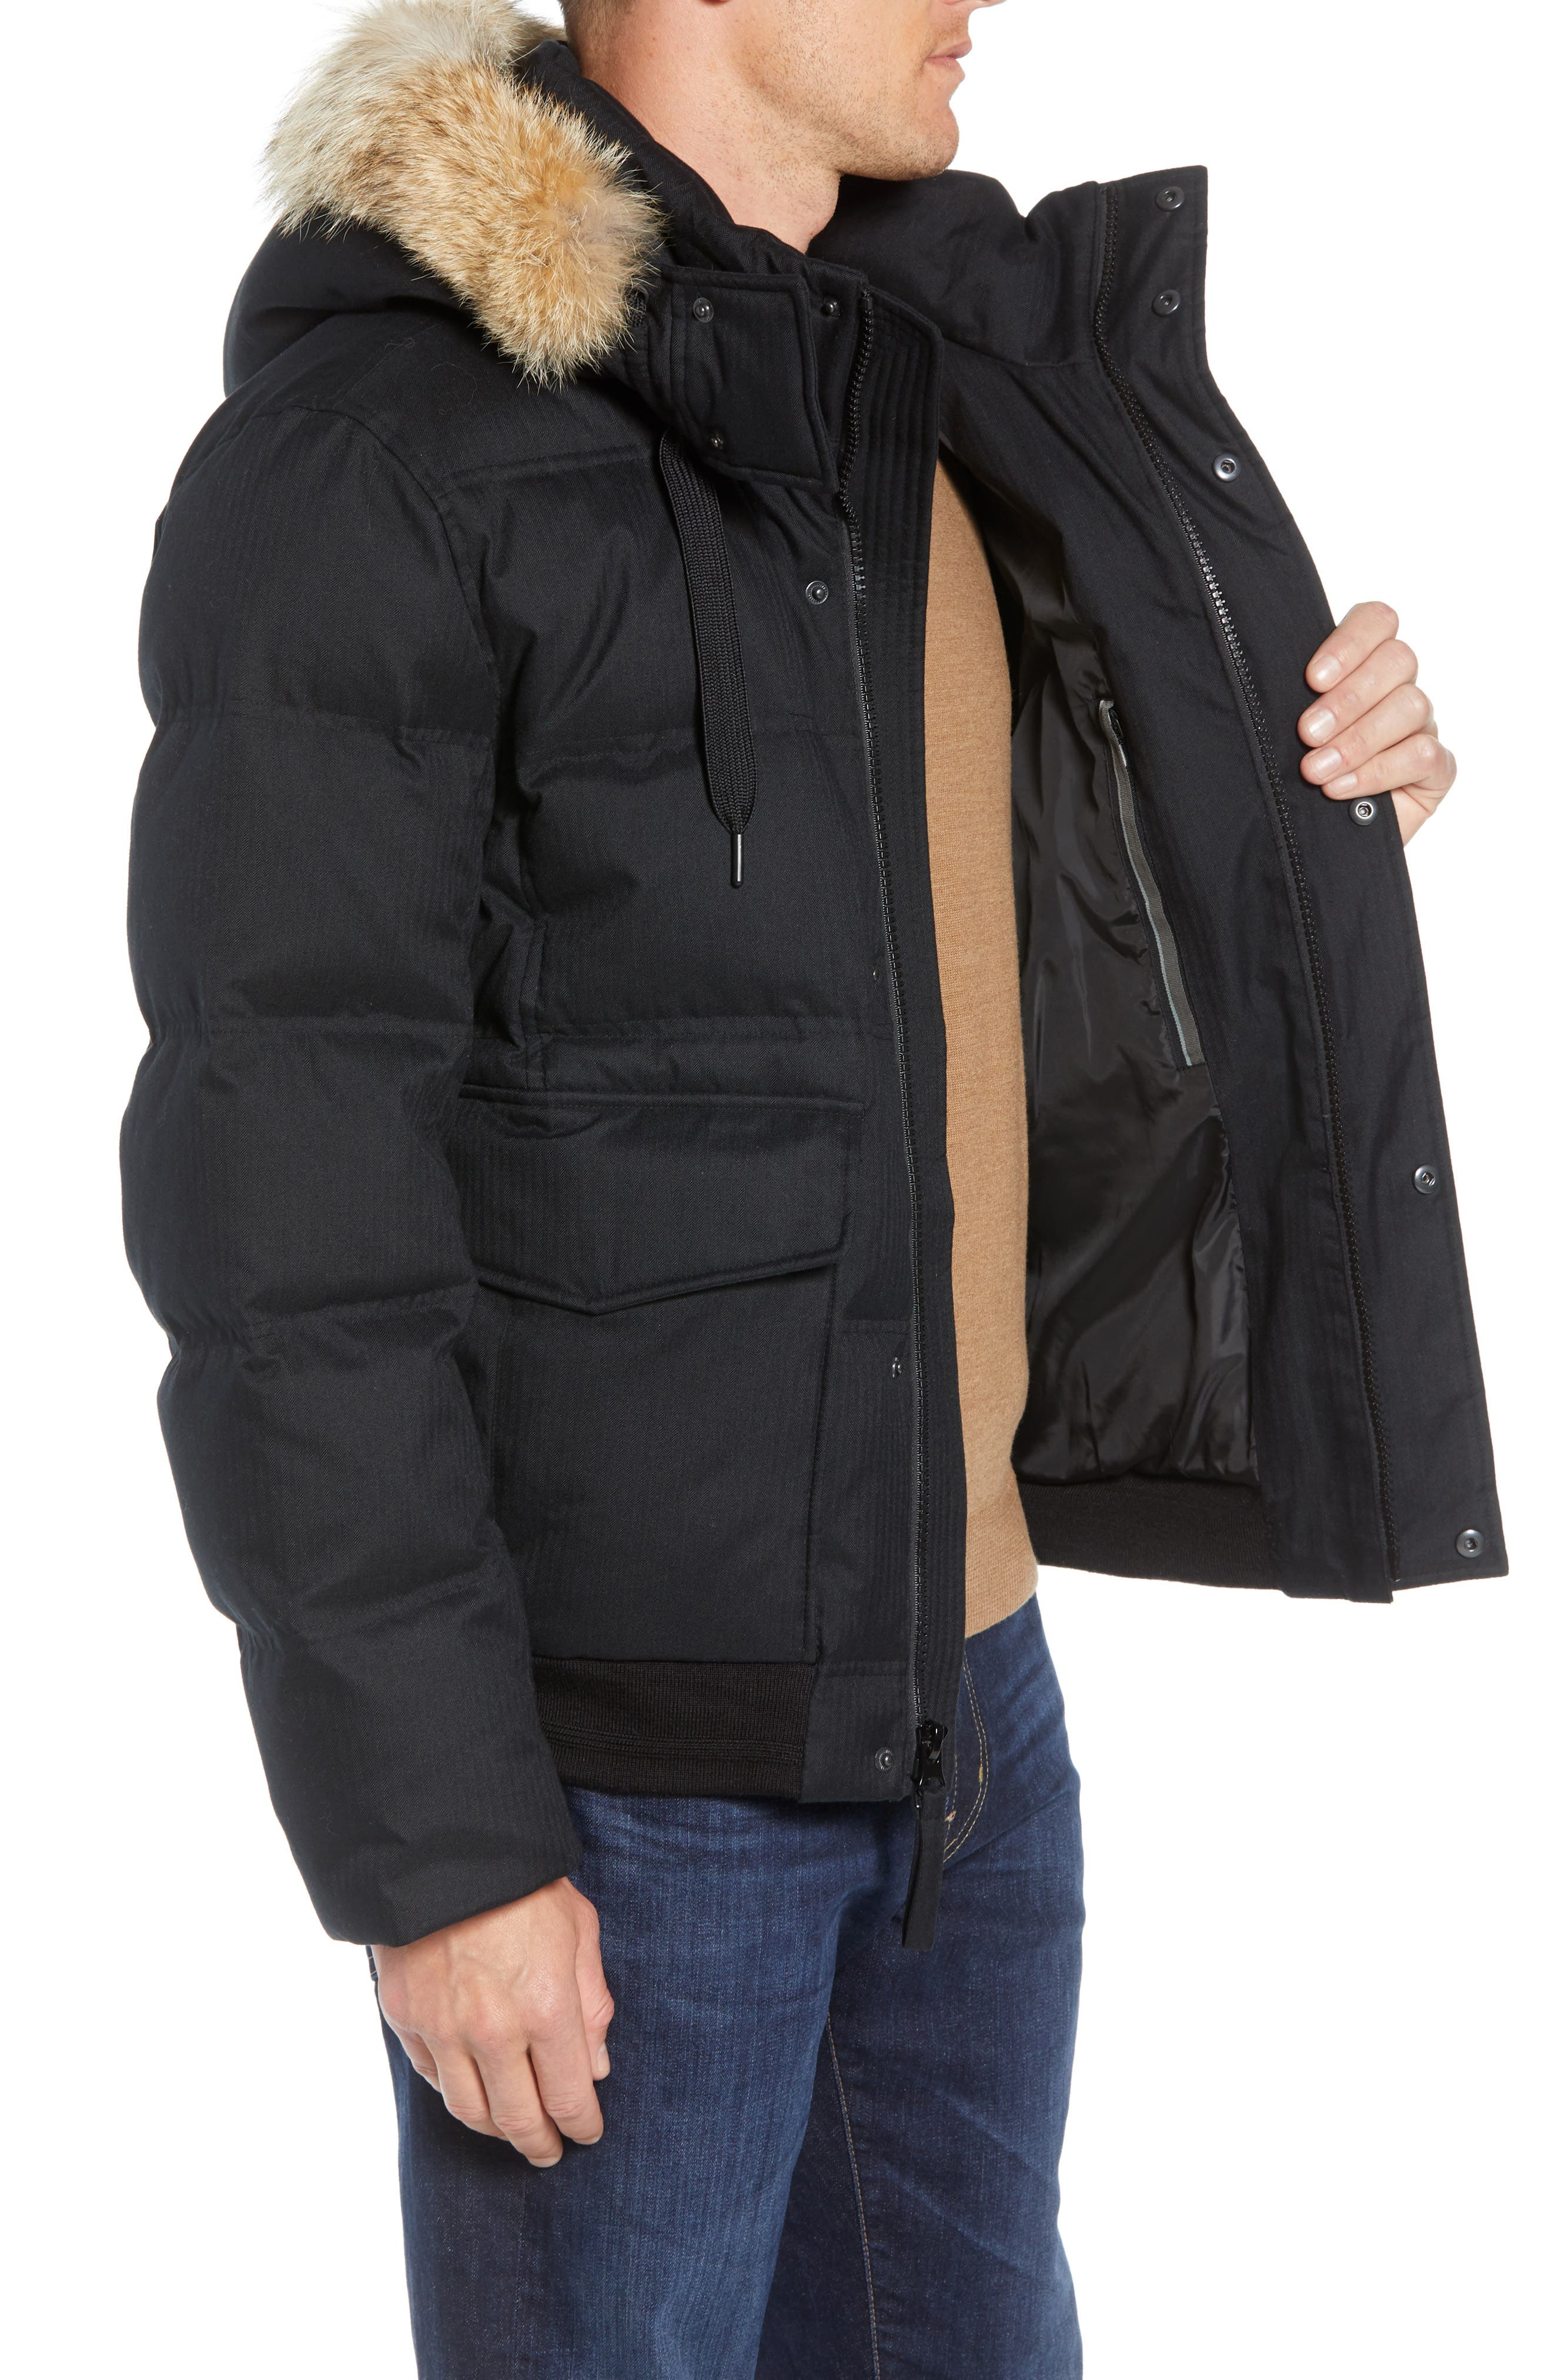 Bohlen Down & Feather Bomber Jacket with Removable Genuine Coyote Fur Trim Hood,                             Alternate thumbnail 4, color,                             BLACK